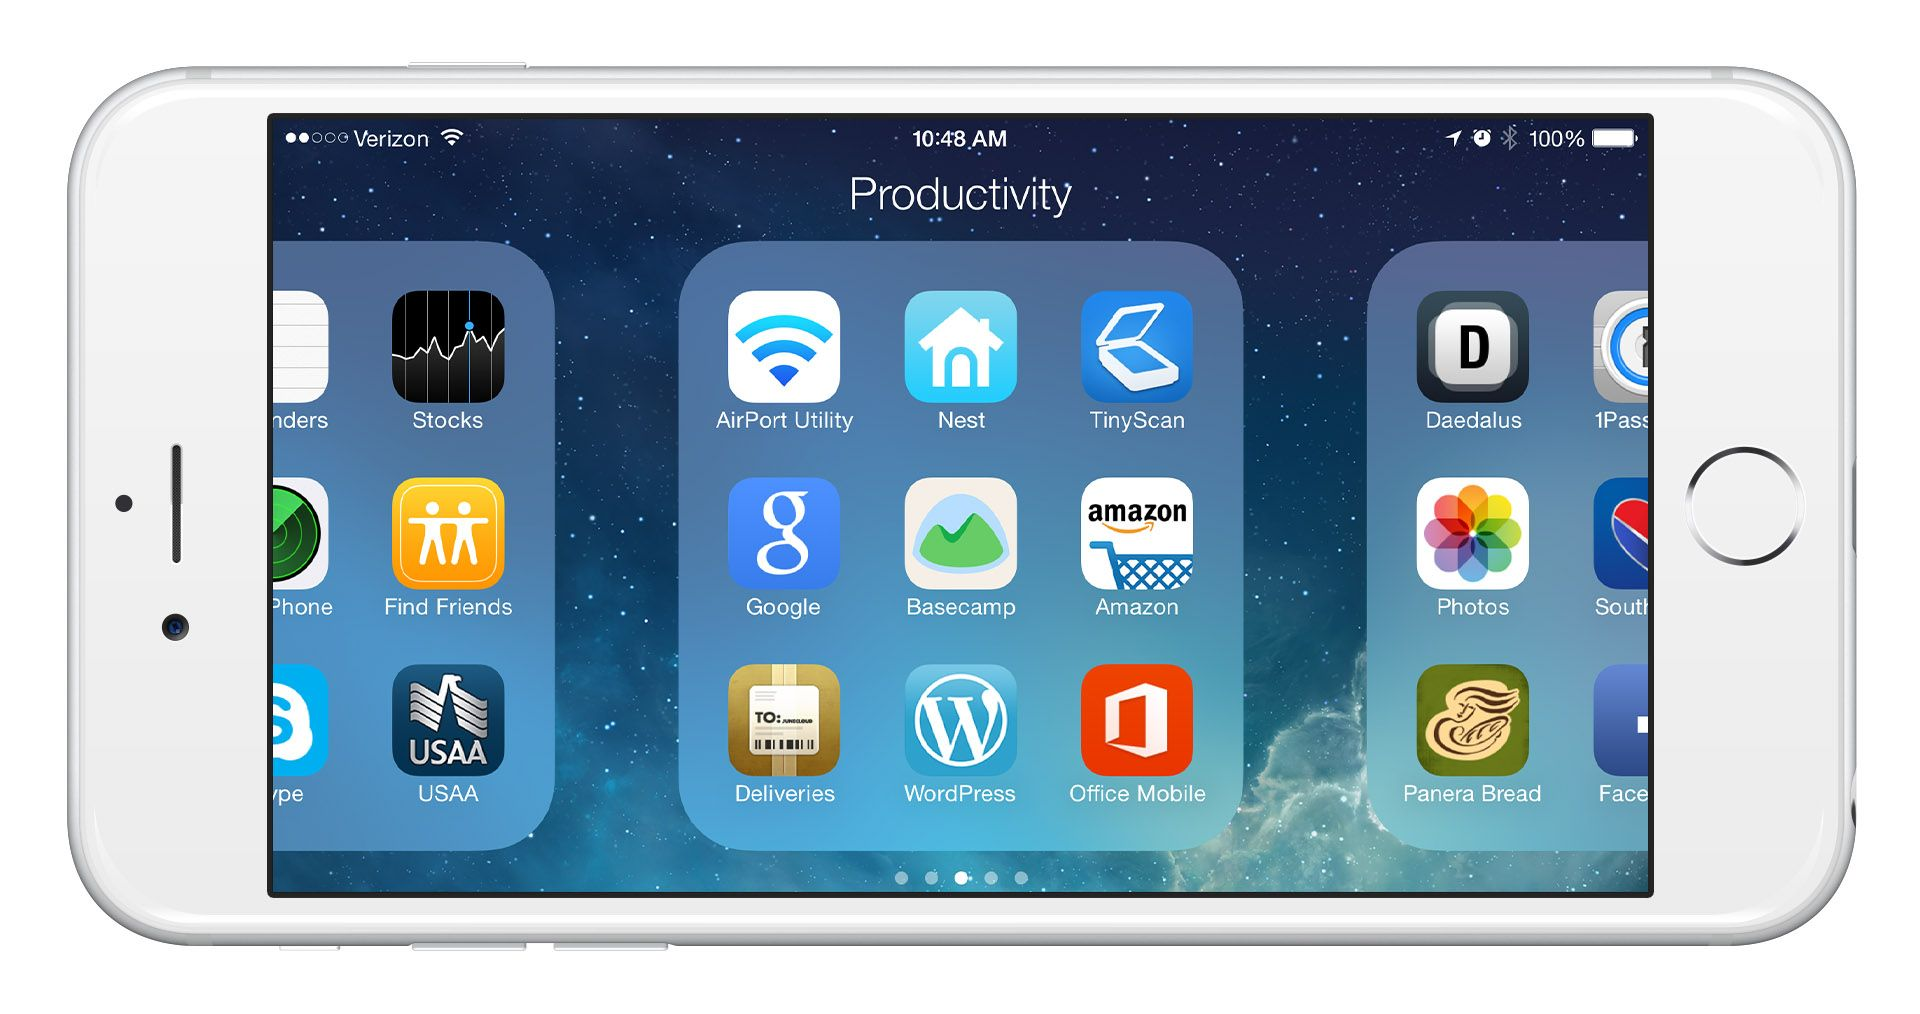 How unlock the iPhone landscape mode on the iPhone 6 / 6